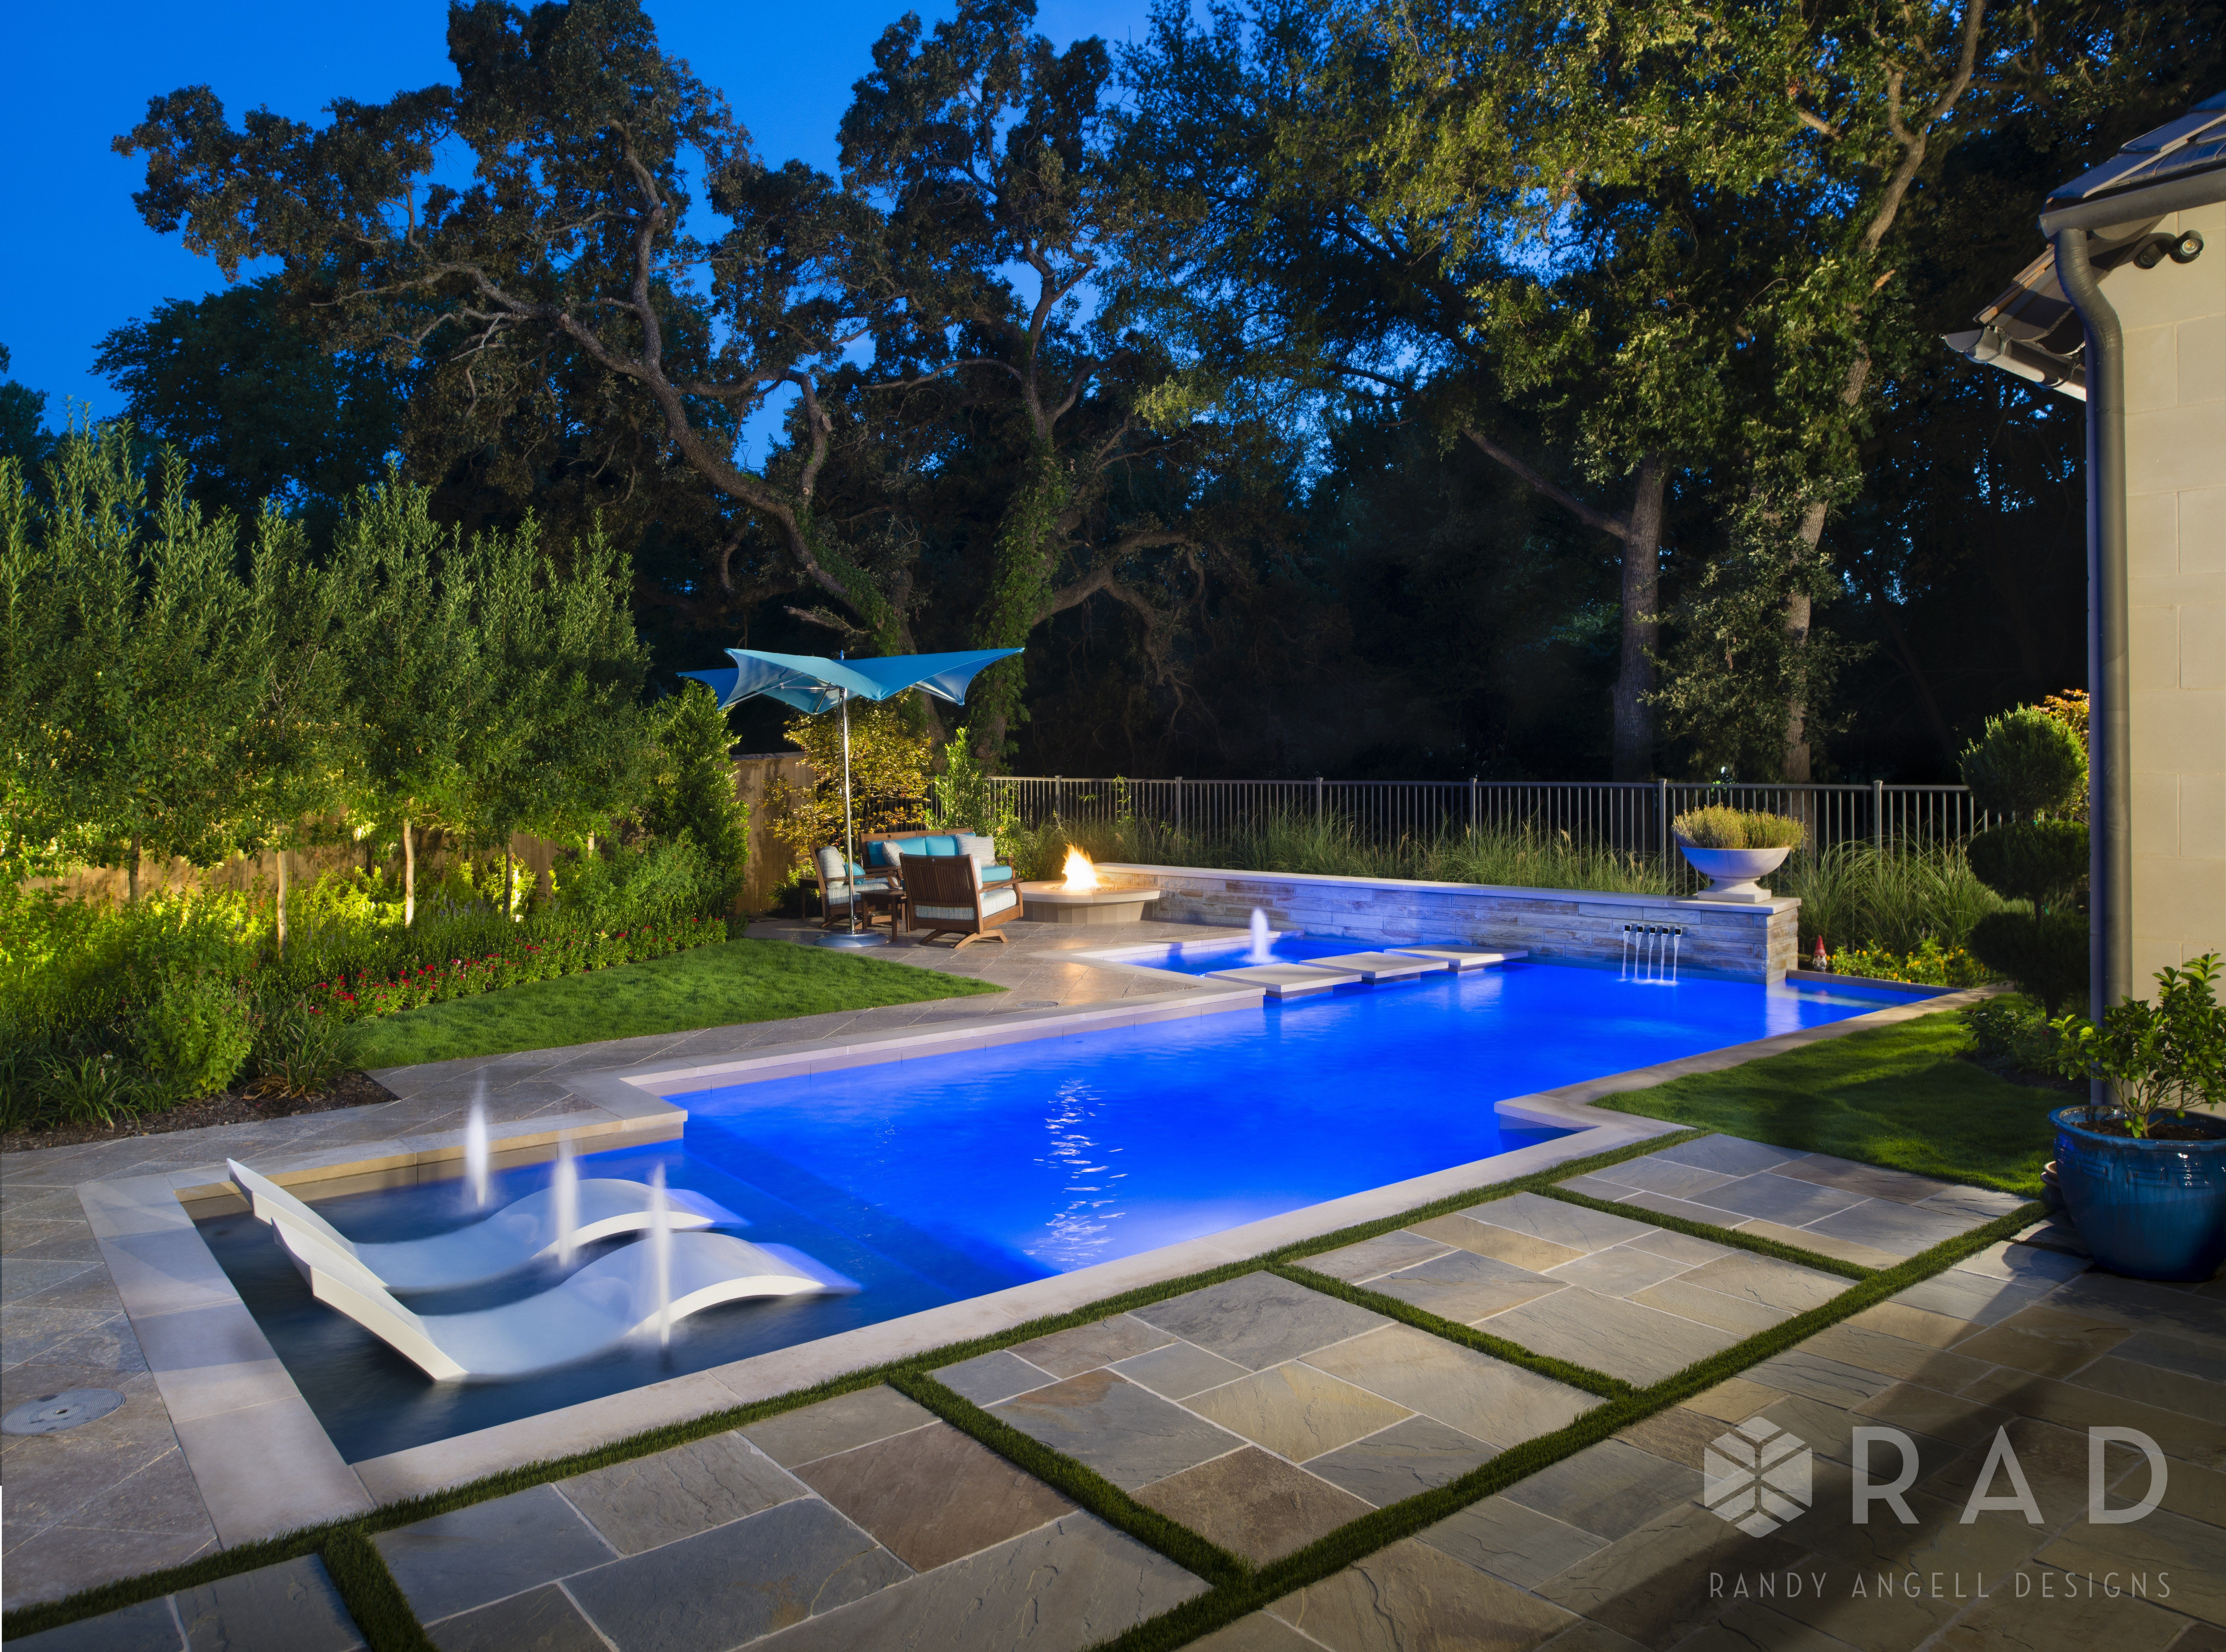 Transitional Modern Design By Randy Angell Designs Linear Swimming Pool